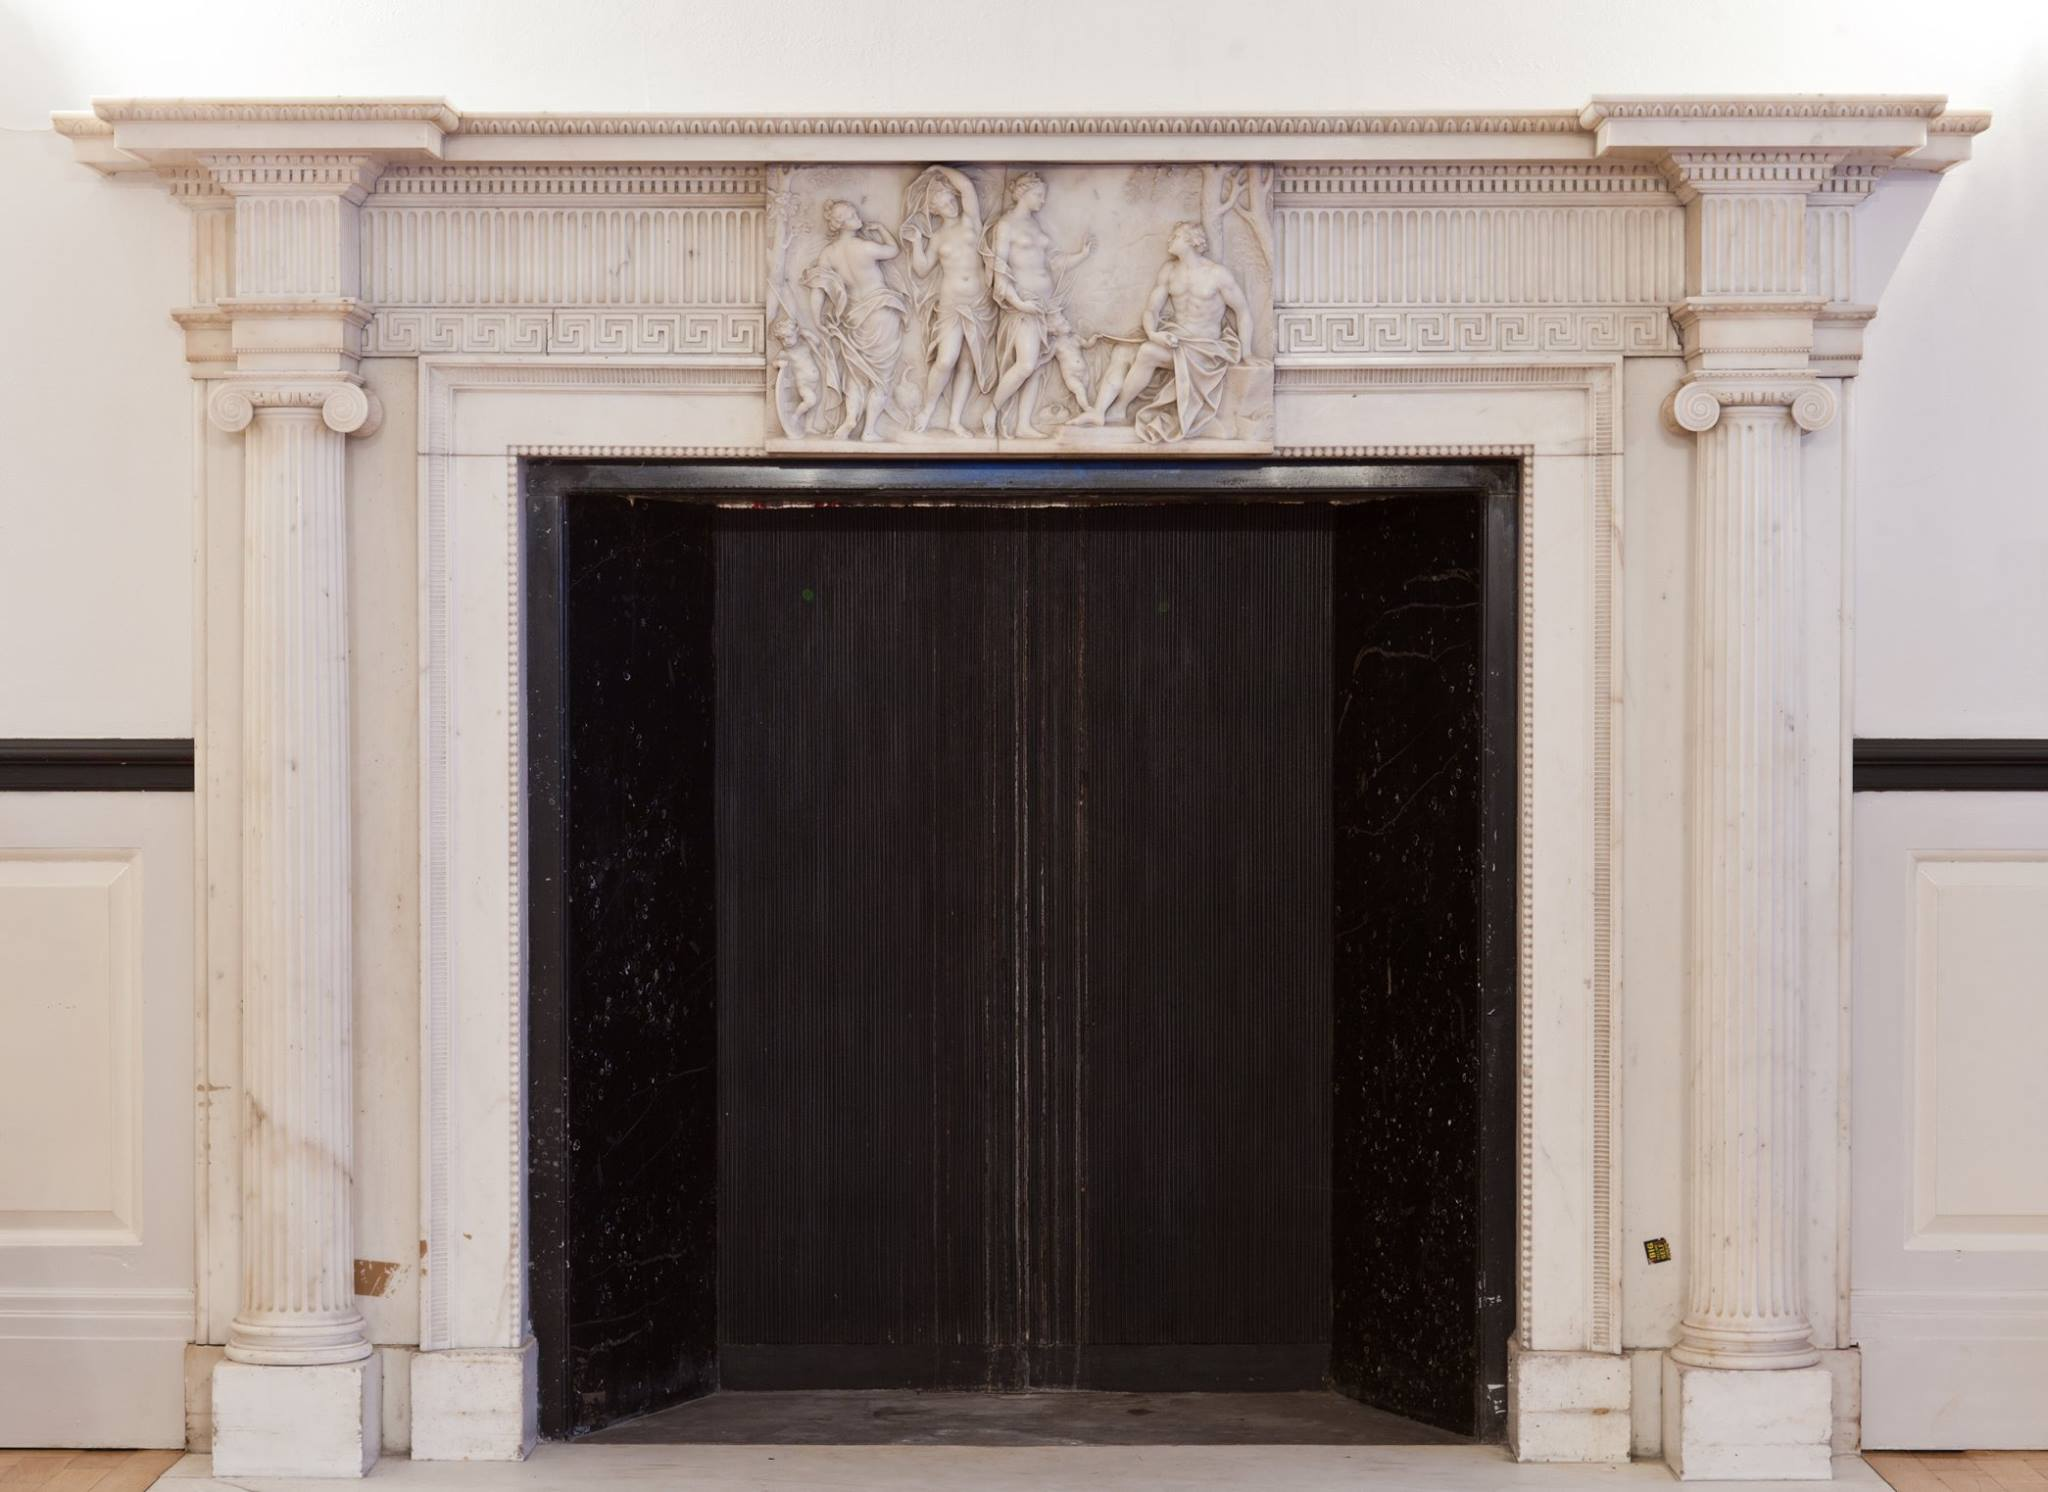 John Devall marble fire surround, formerly in Kings Weston House, now in Orchard Street, Bristol georgian fireplace marble neoclassical